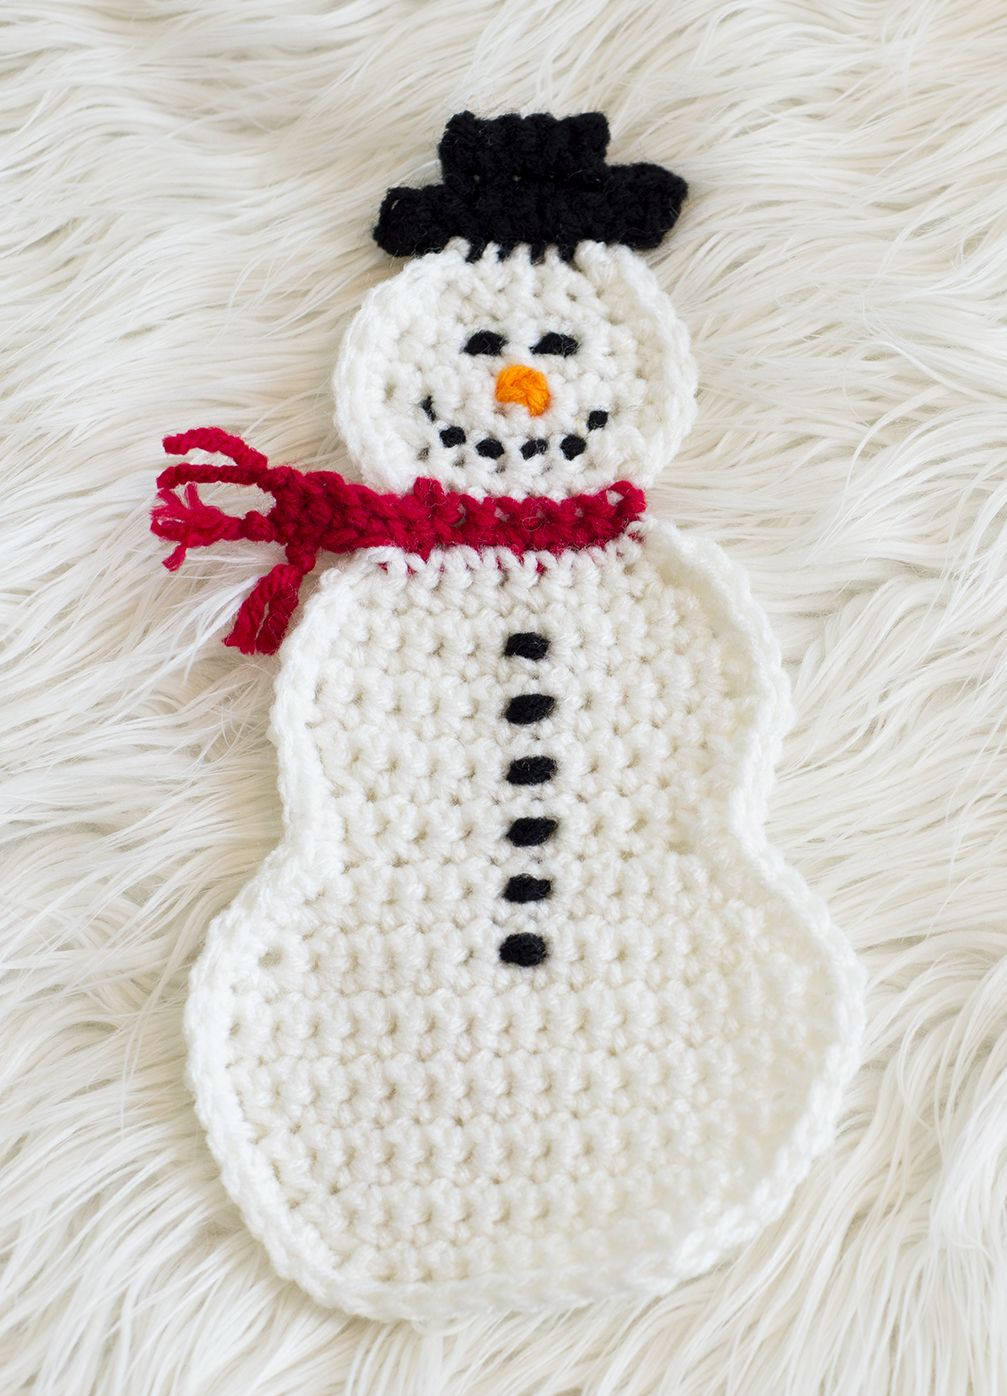 Snowman Pot Holder Free Pattern Knit Crochet Crochet 6